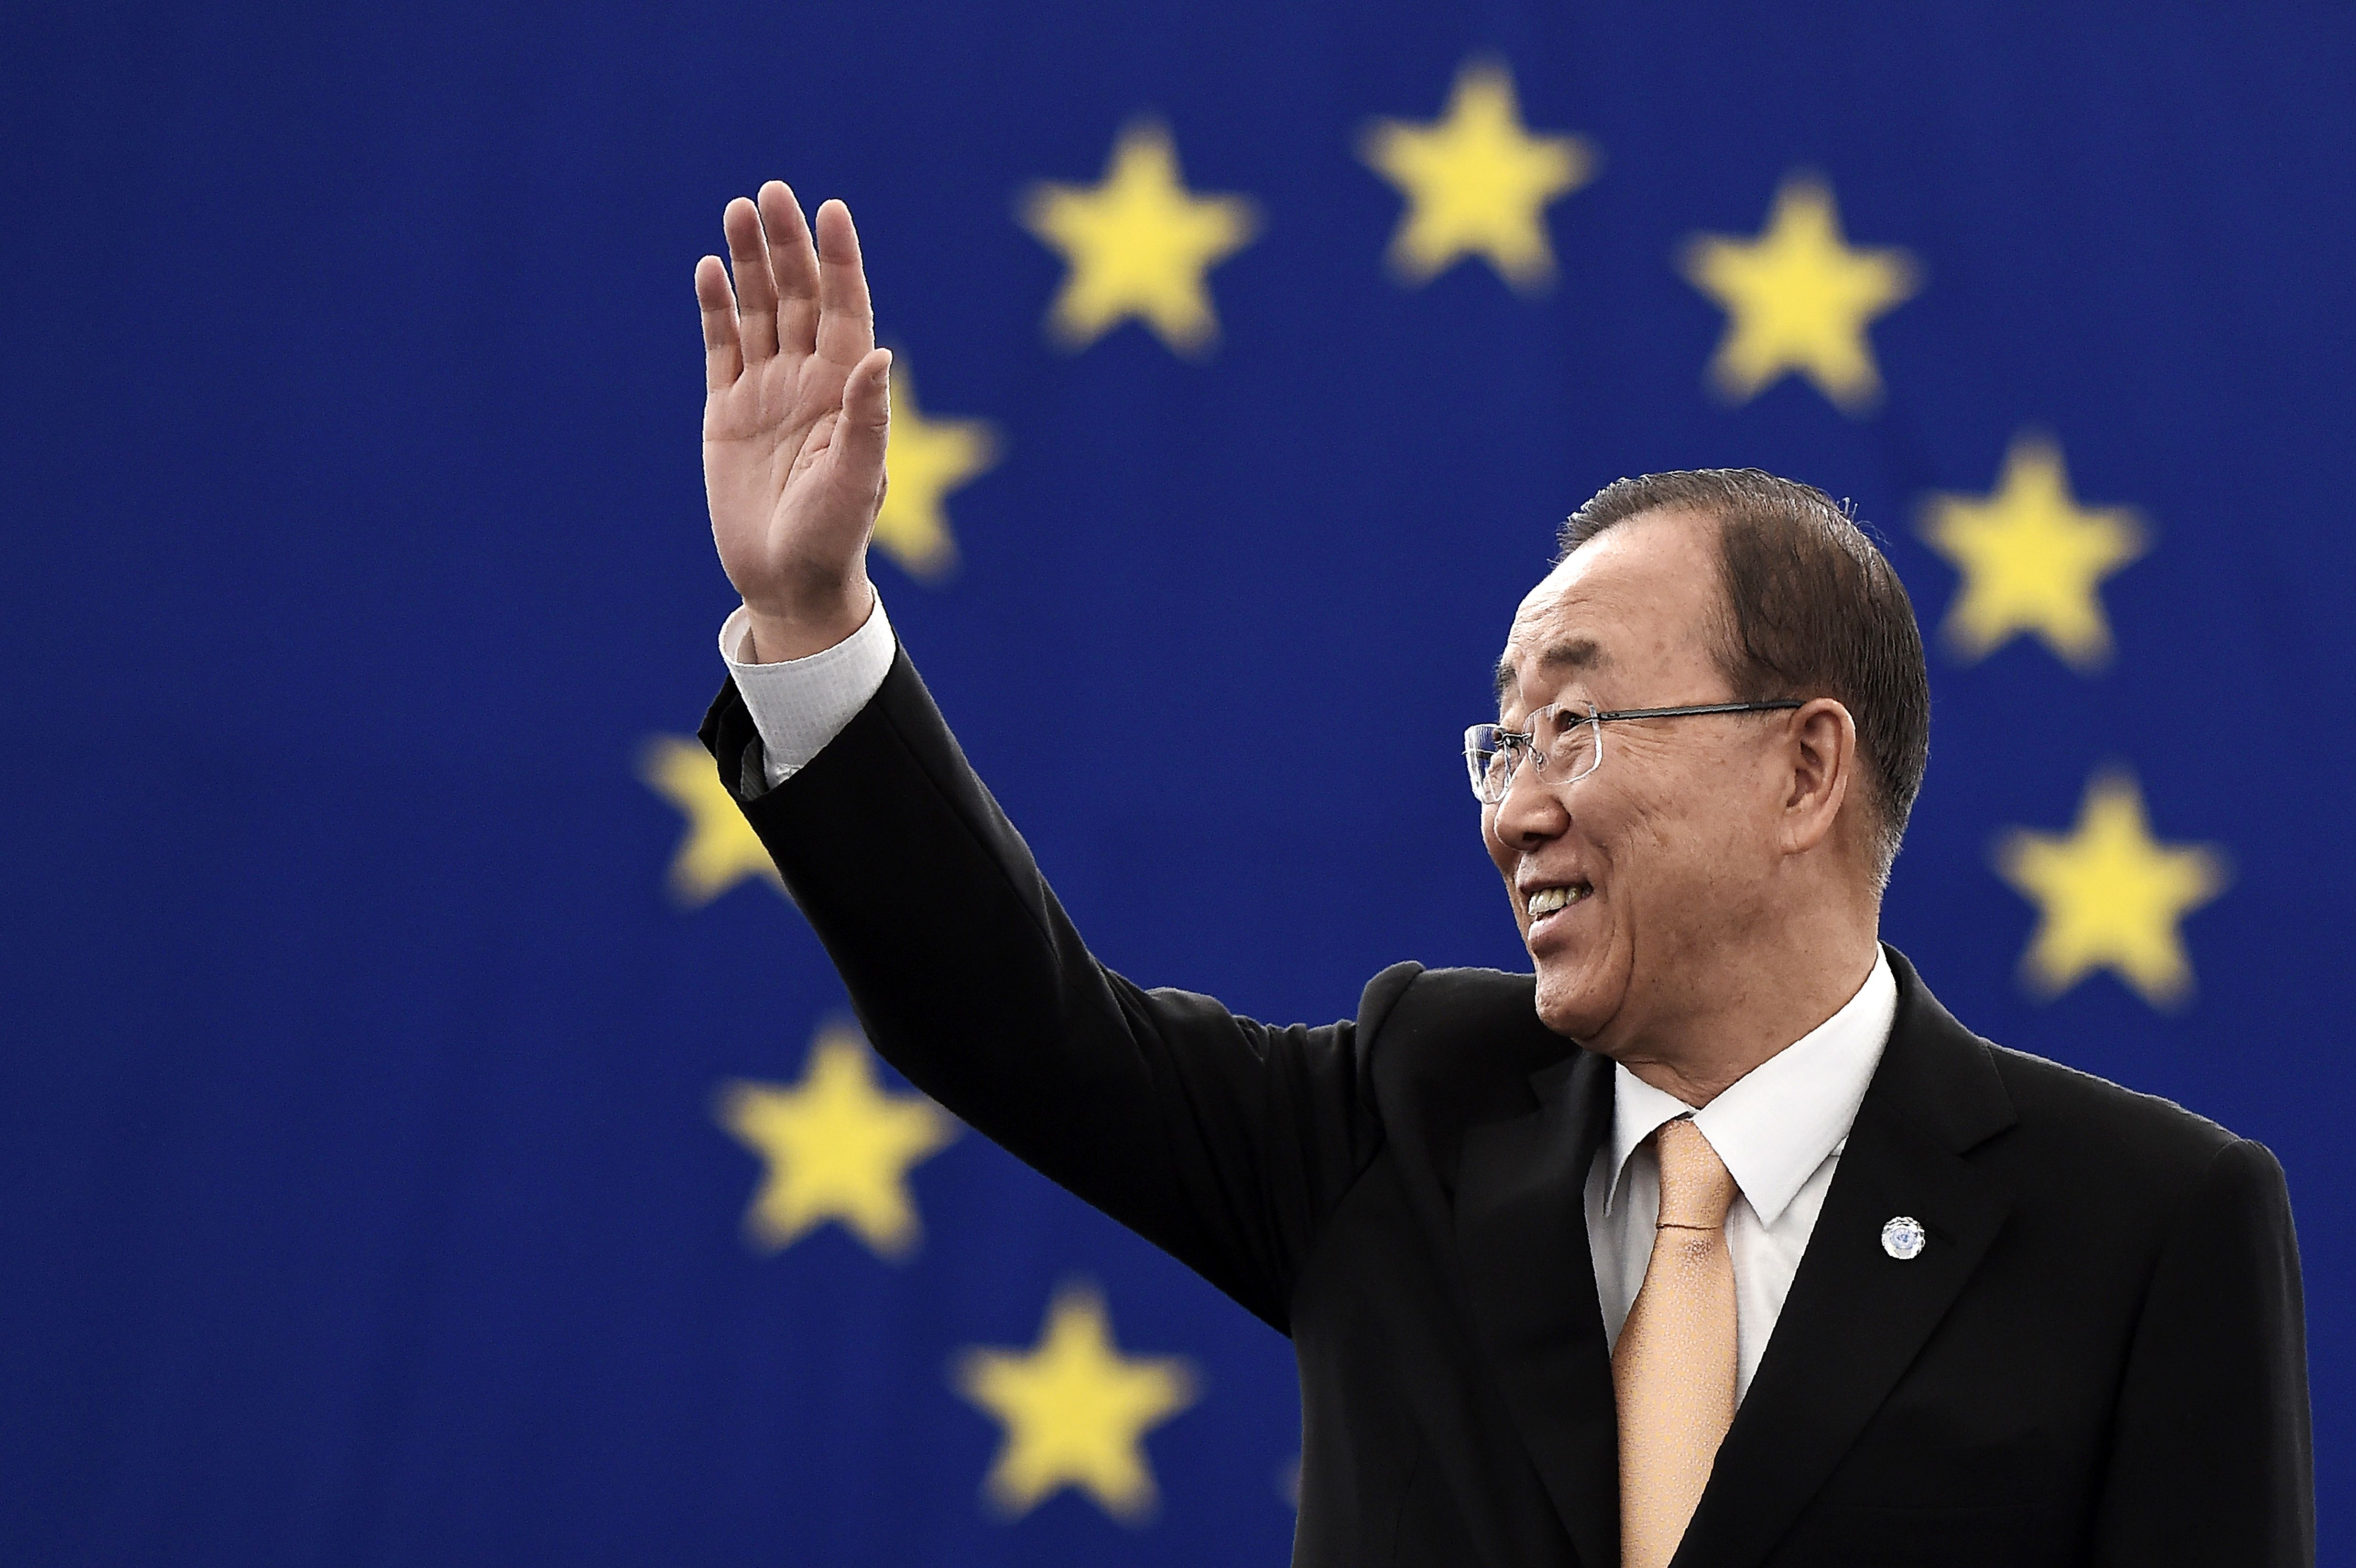 UN Secretary-General Ban Ki-moon gestures as he arrives to take part in a voting session on the UN Climate Change agreement struck in Paris last year at the European Parliament in Strasbourg, eastern France, on Oct. 4, 2016.